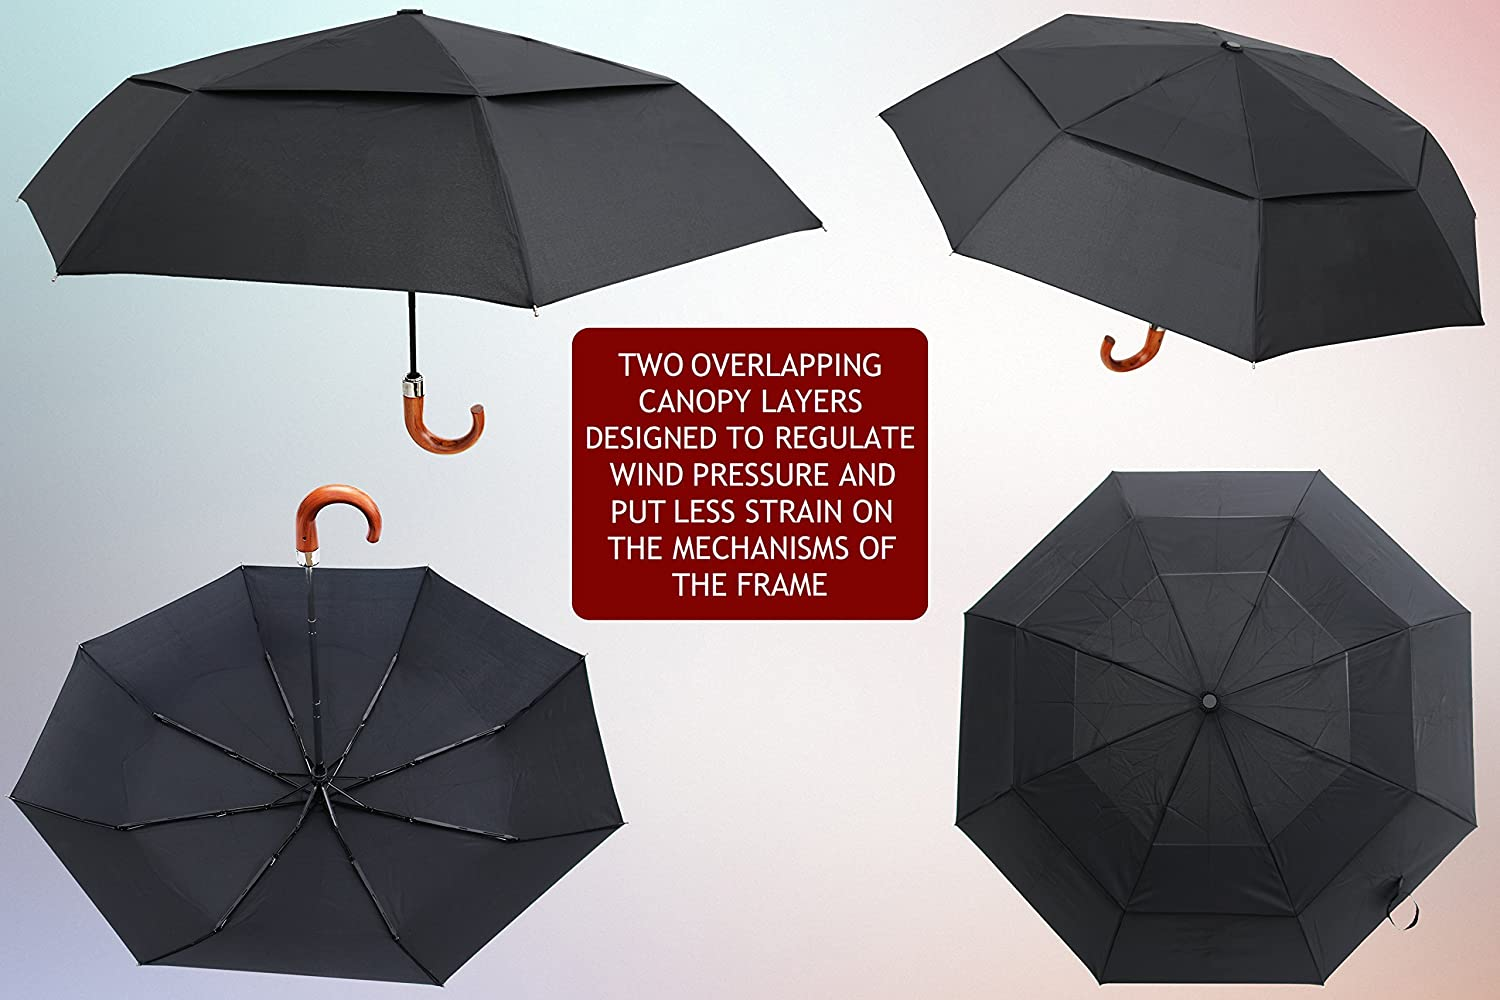 Auto open//close Luxury automatic folding travel umbrella with high grain natural wood handle /& black double vented 210T water repellent canopy windproof for men//women lightweight Classic brolly!